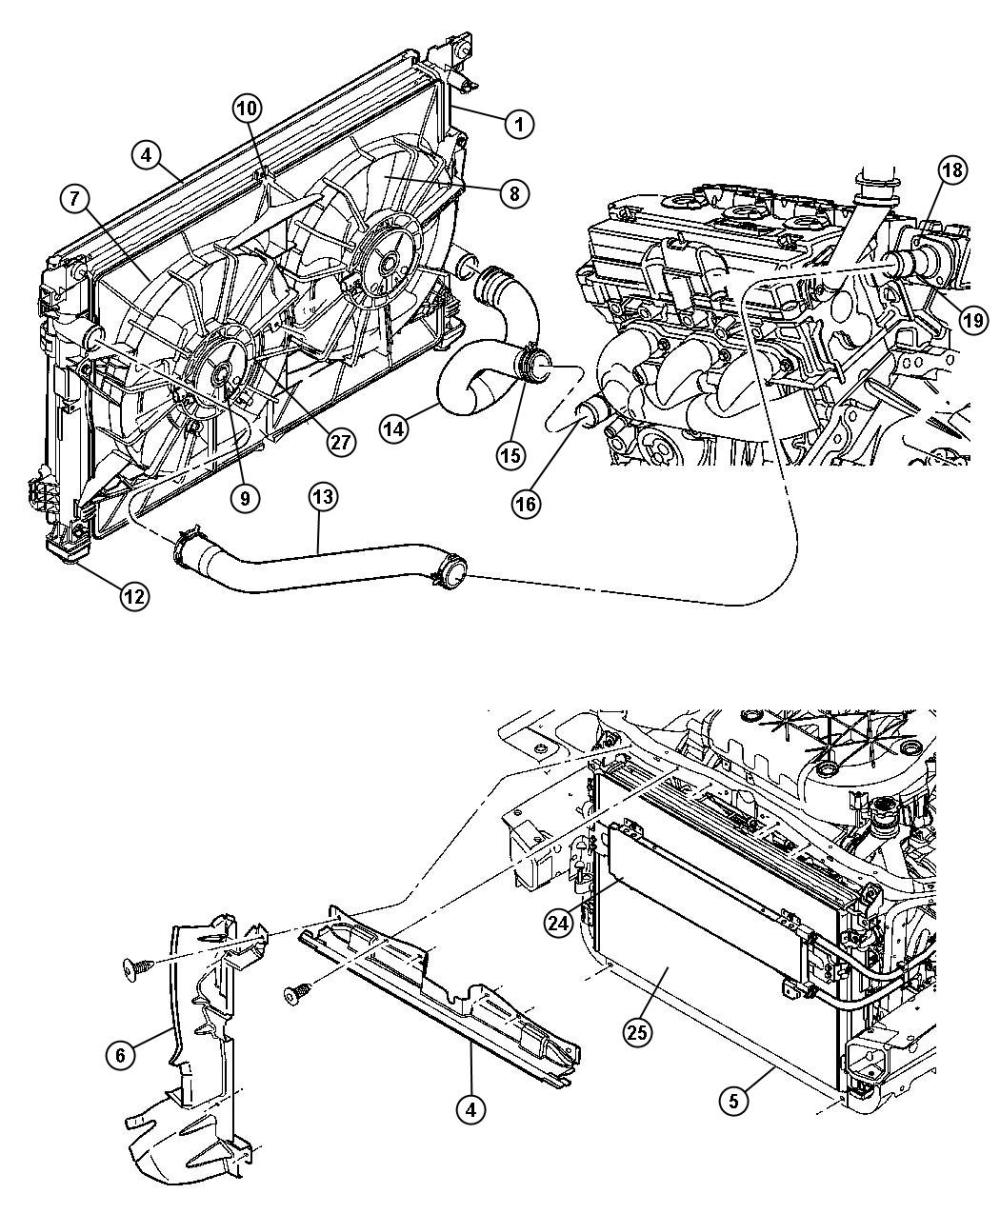 medium resolution of pacifica parts diagram on image 2004 chrysler pacifica engine pacifica parts diagram on image 2004 chrysler pacifica engine diagram